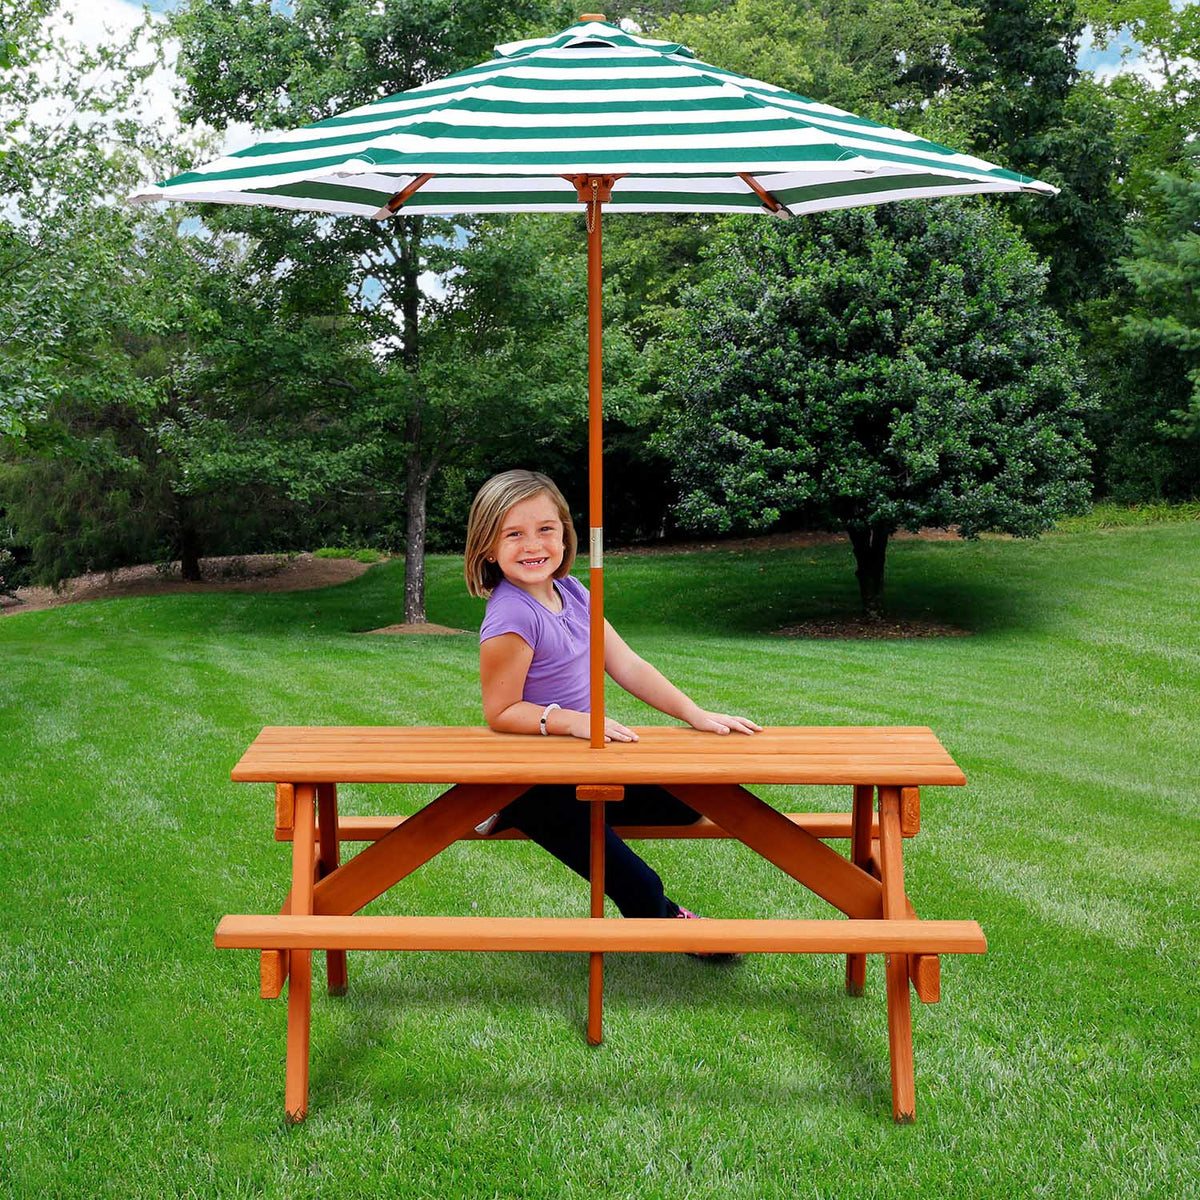 Gorilla-Playsets-Children's-Picnic-Table-Side